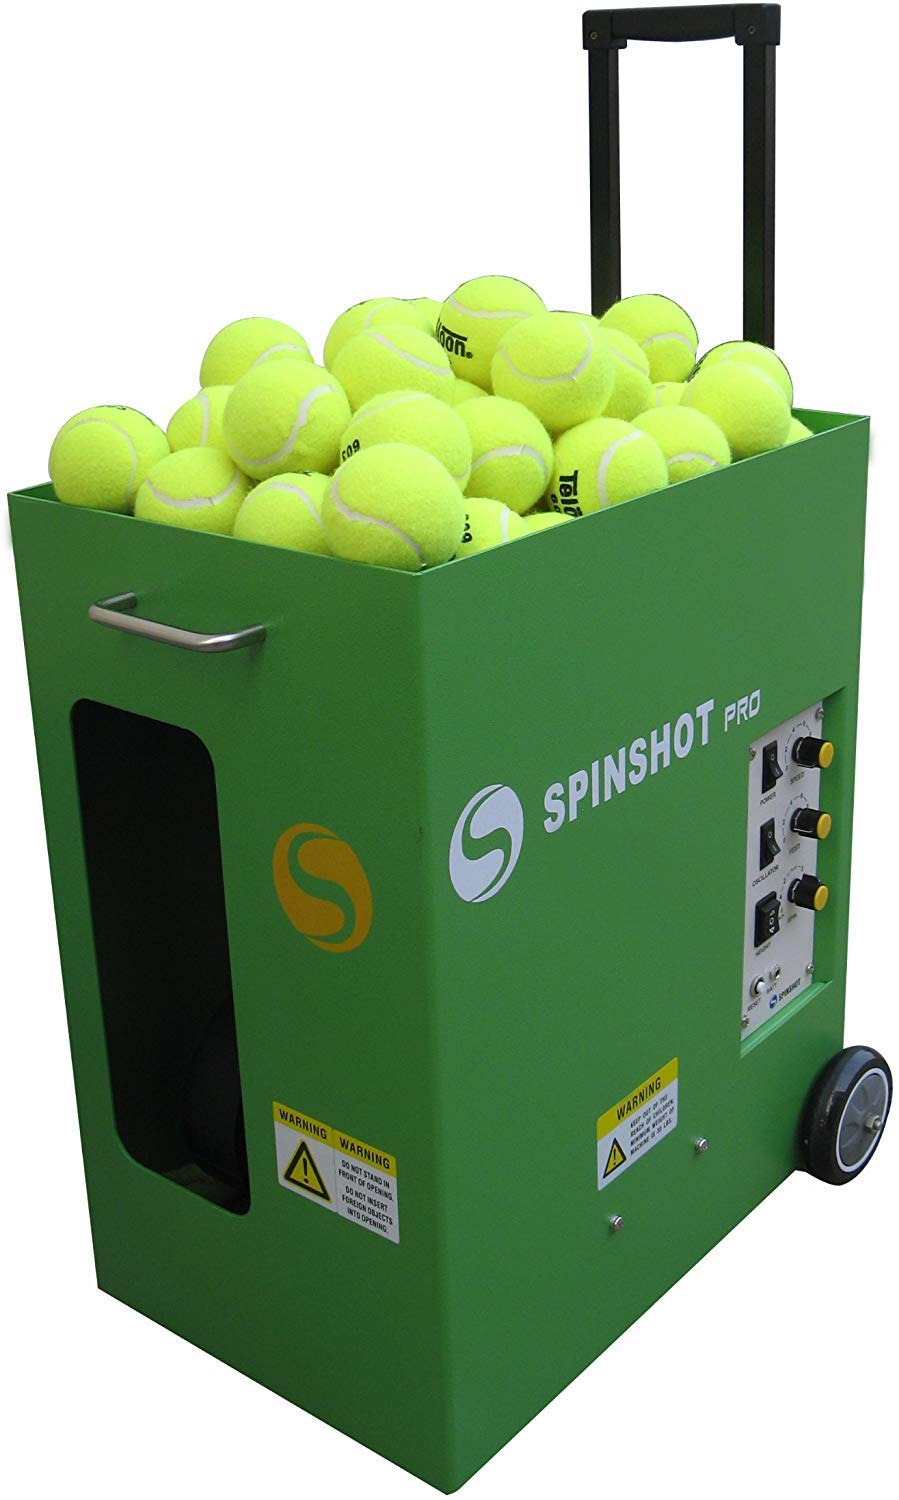 SPINSHOT PRO Throwing Machines Portable Training